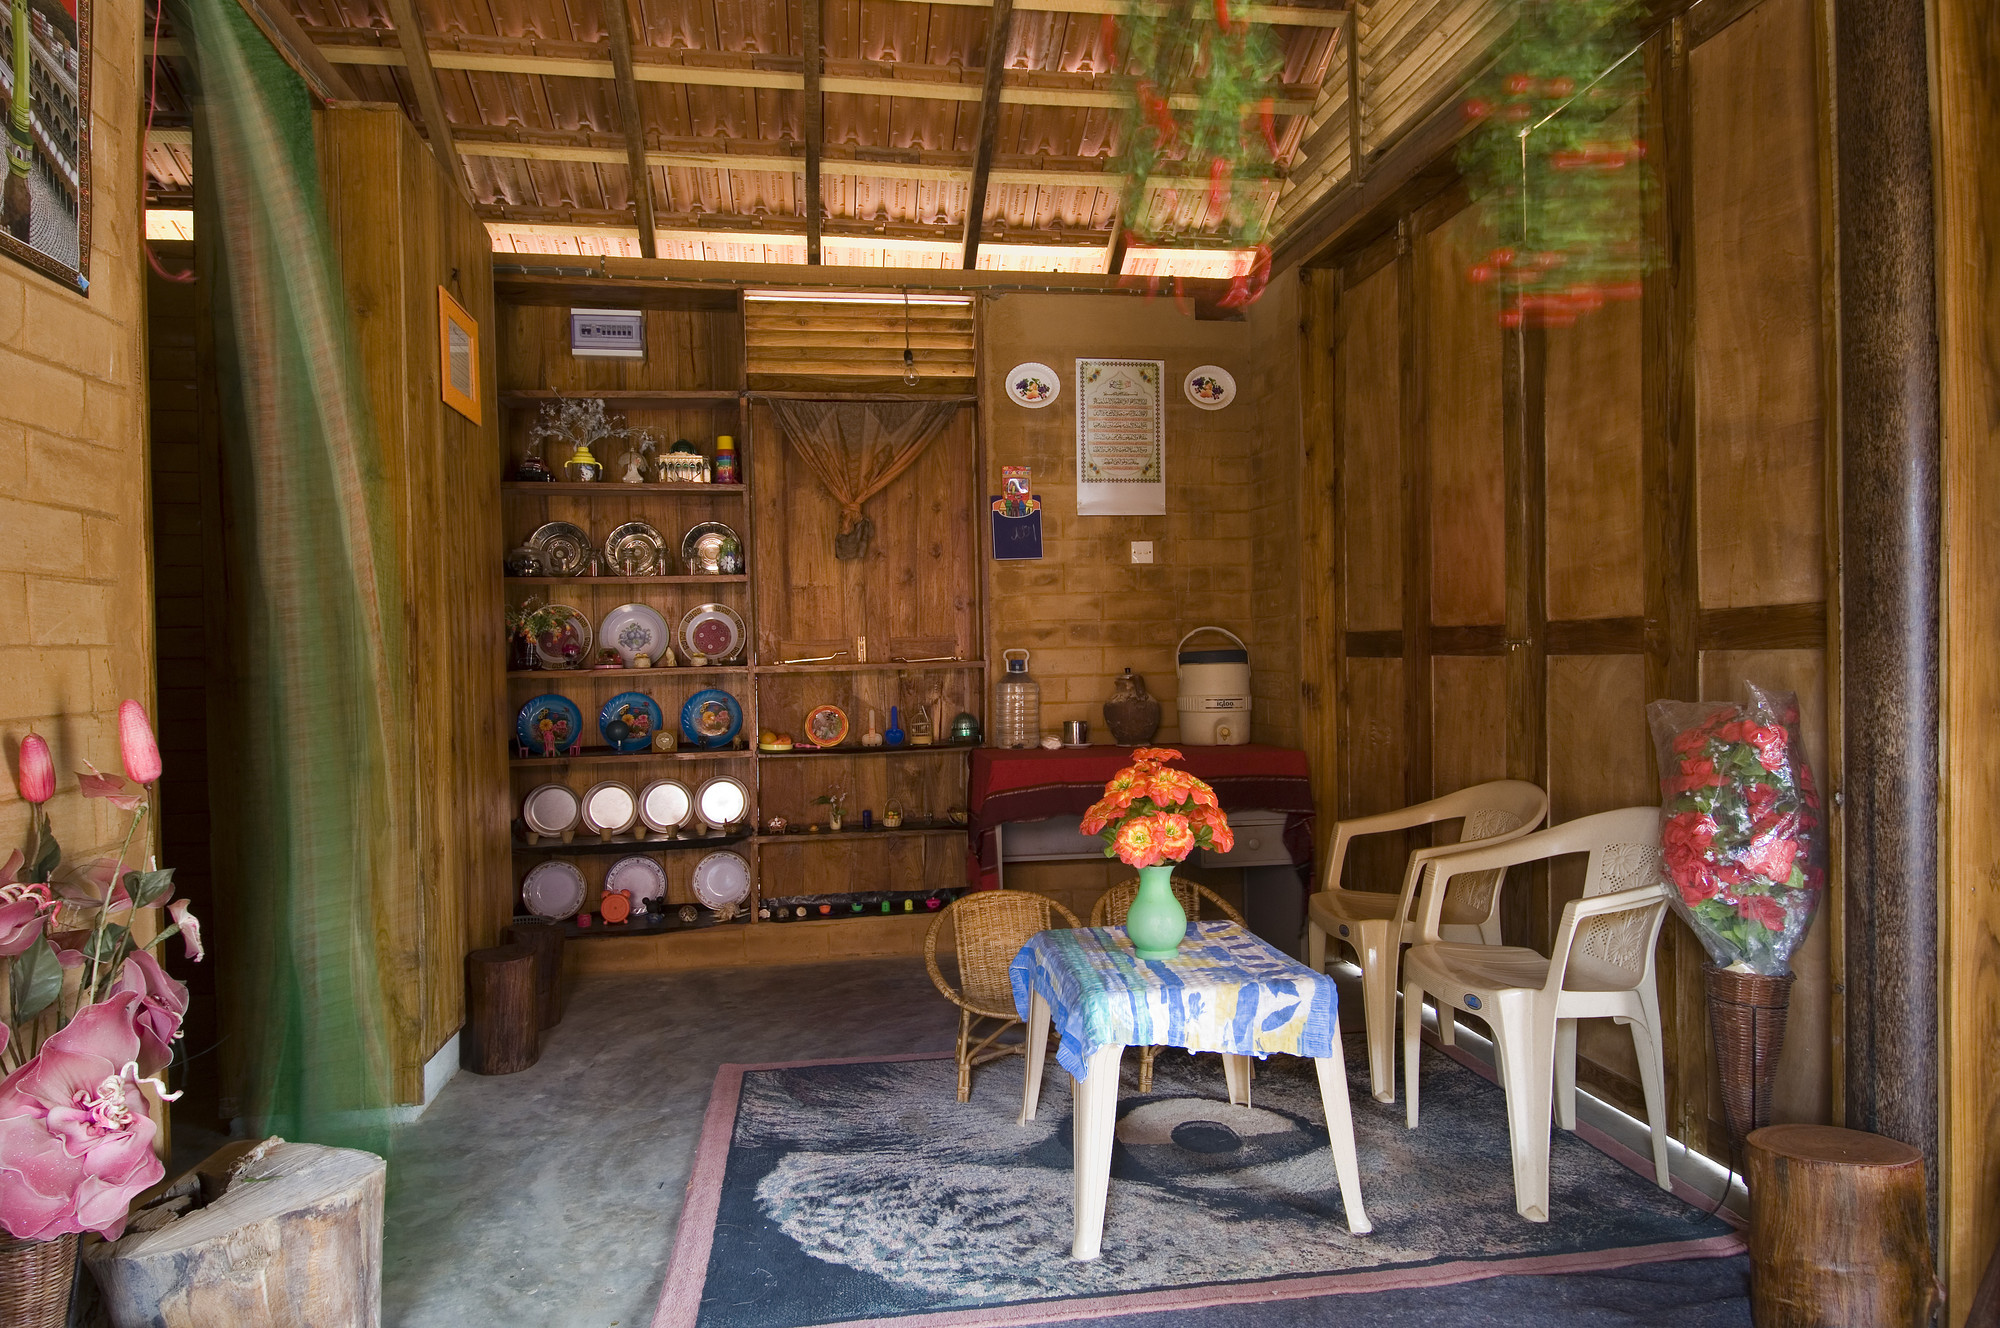 Gallery of post tsunami housing shigeru ban architects 5 for Old indian house interior